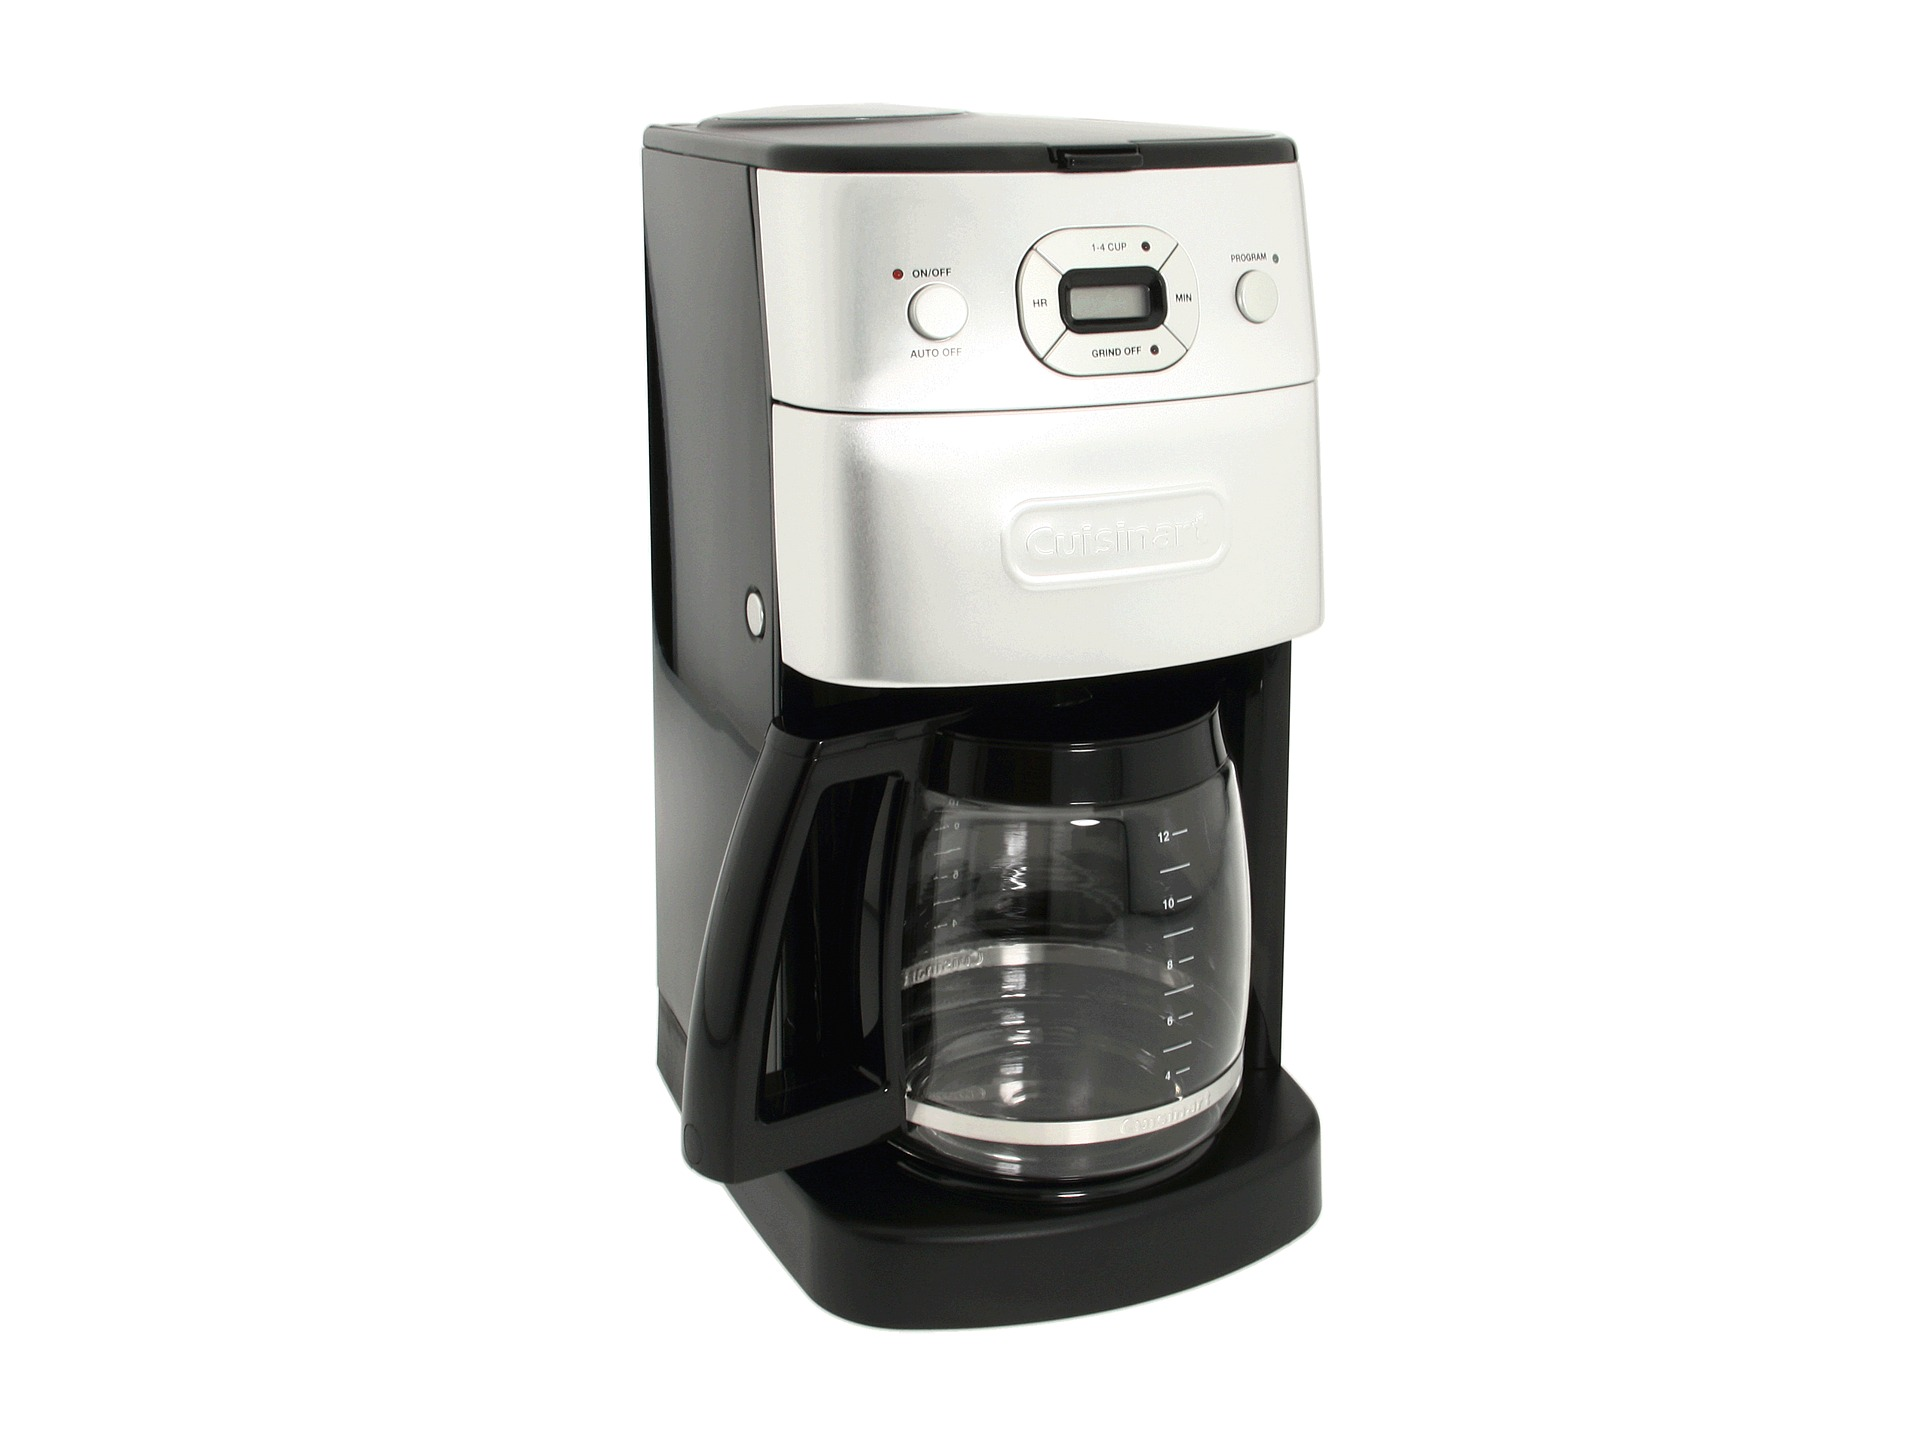 Cuisinart Automatic Grind And Brew Coffee Maker Problems : Cuisinart DGB-625BC Grind & Brew 12-Cup Coffee maker Black/Brushed Metal - Zappos.com Free ...